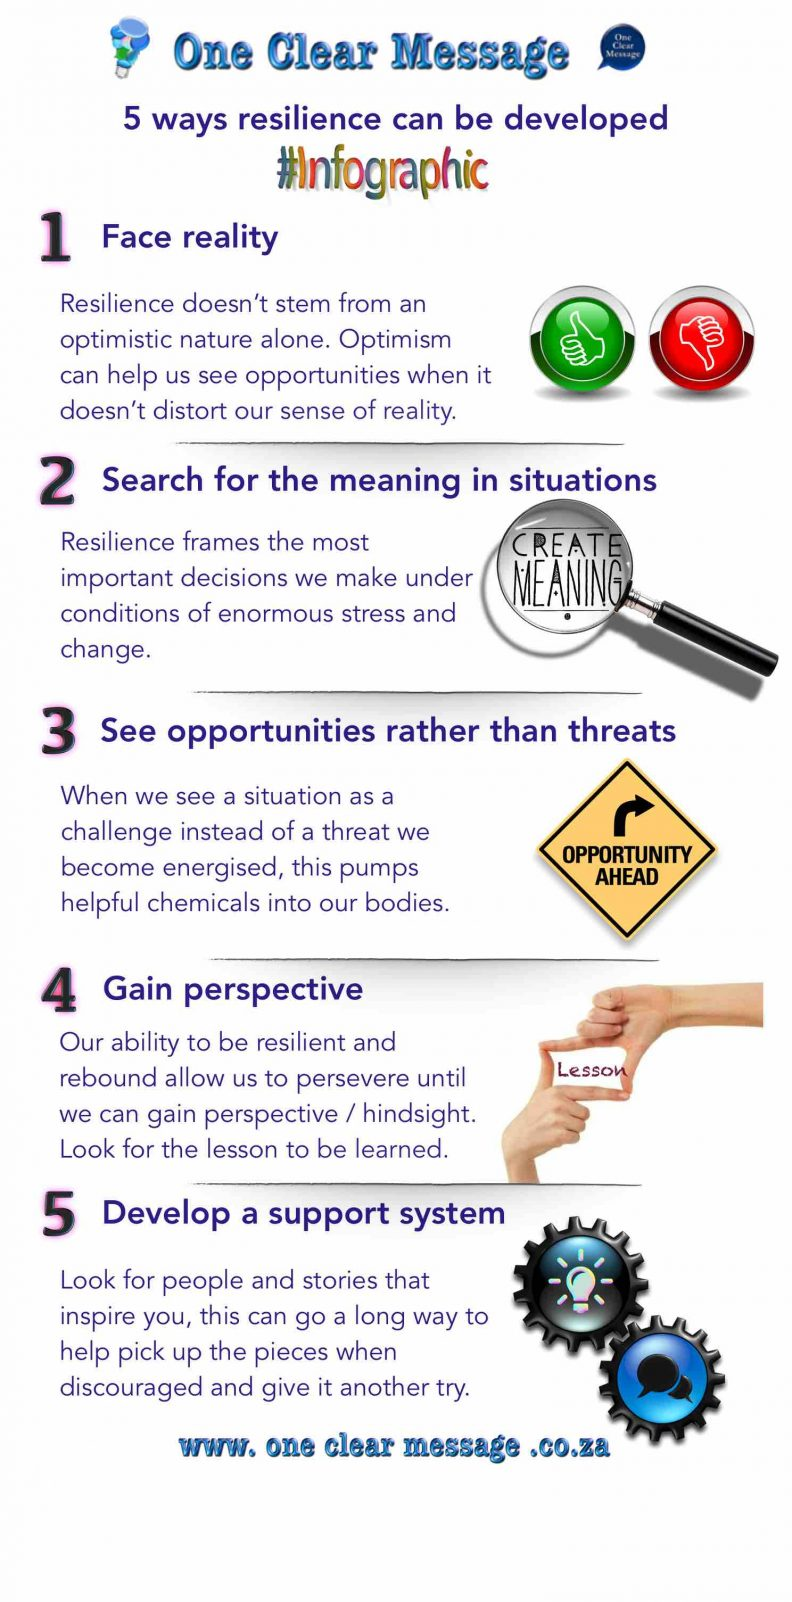 5 ways resilience can be developed Infographic